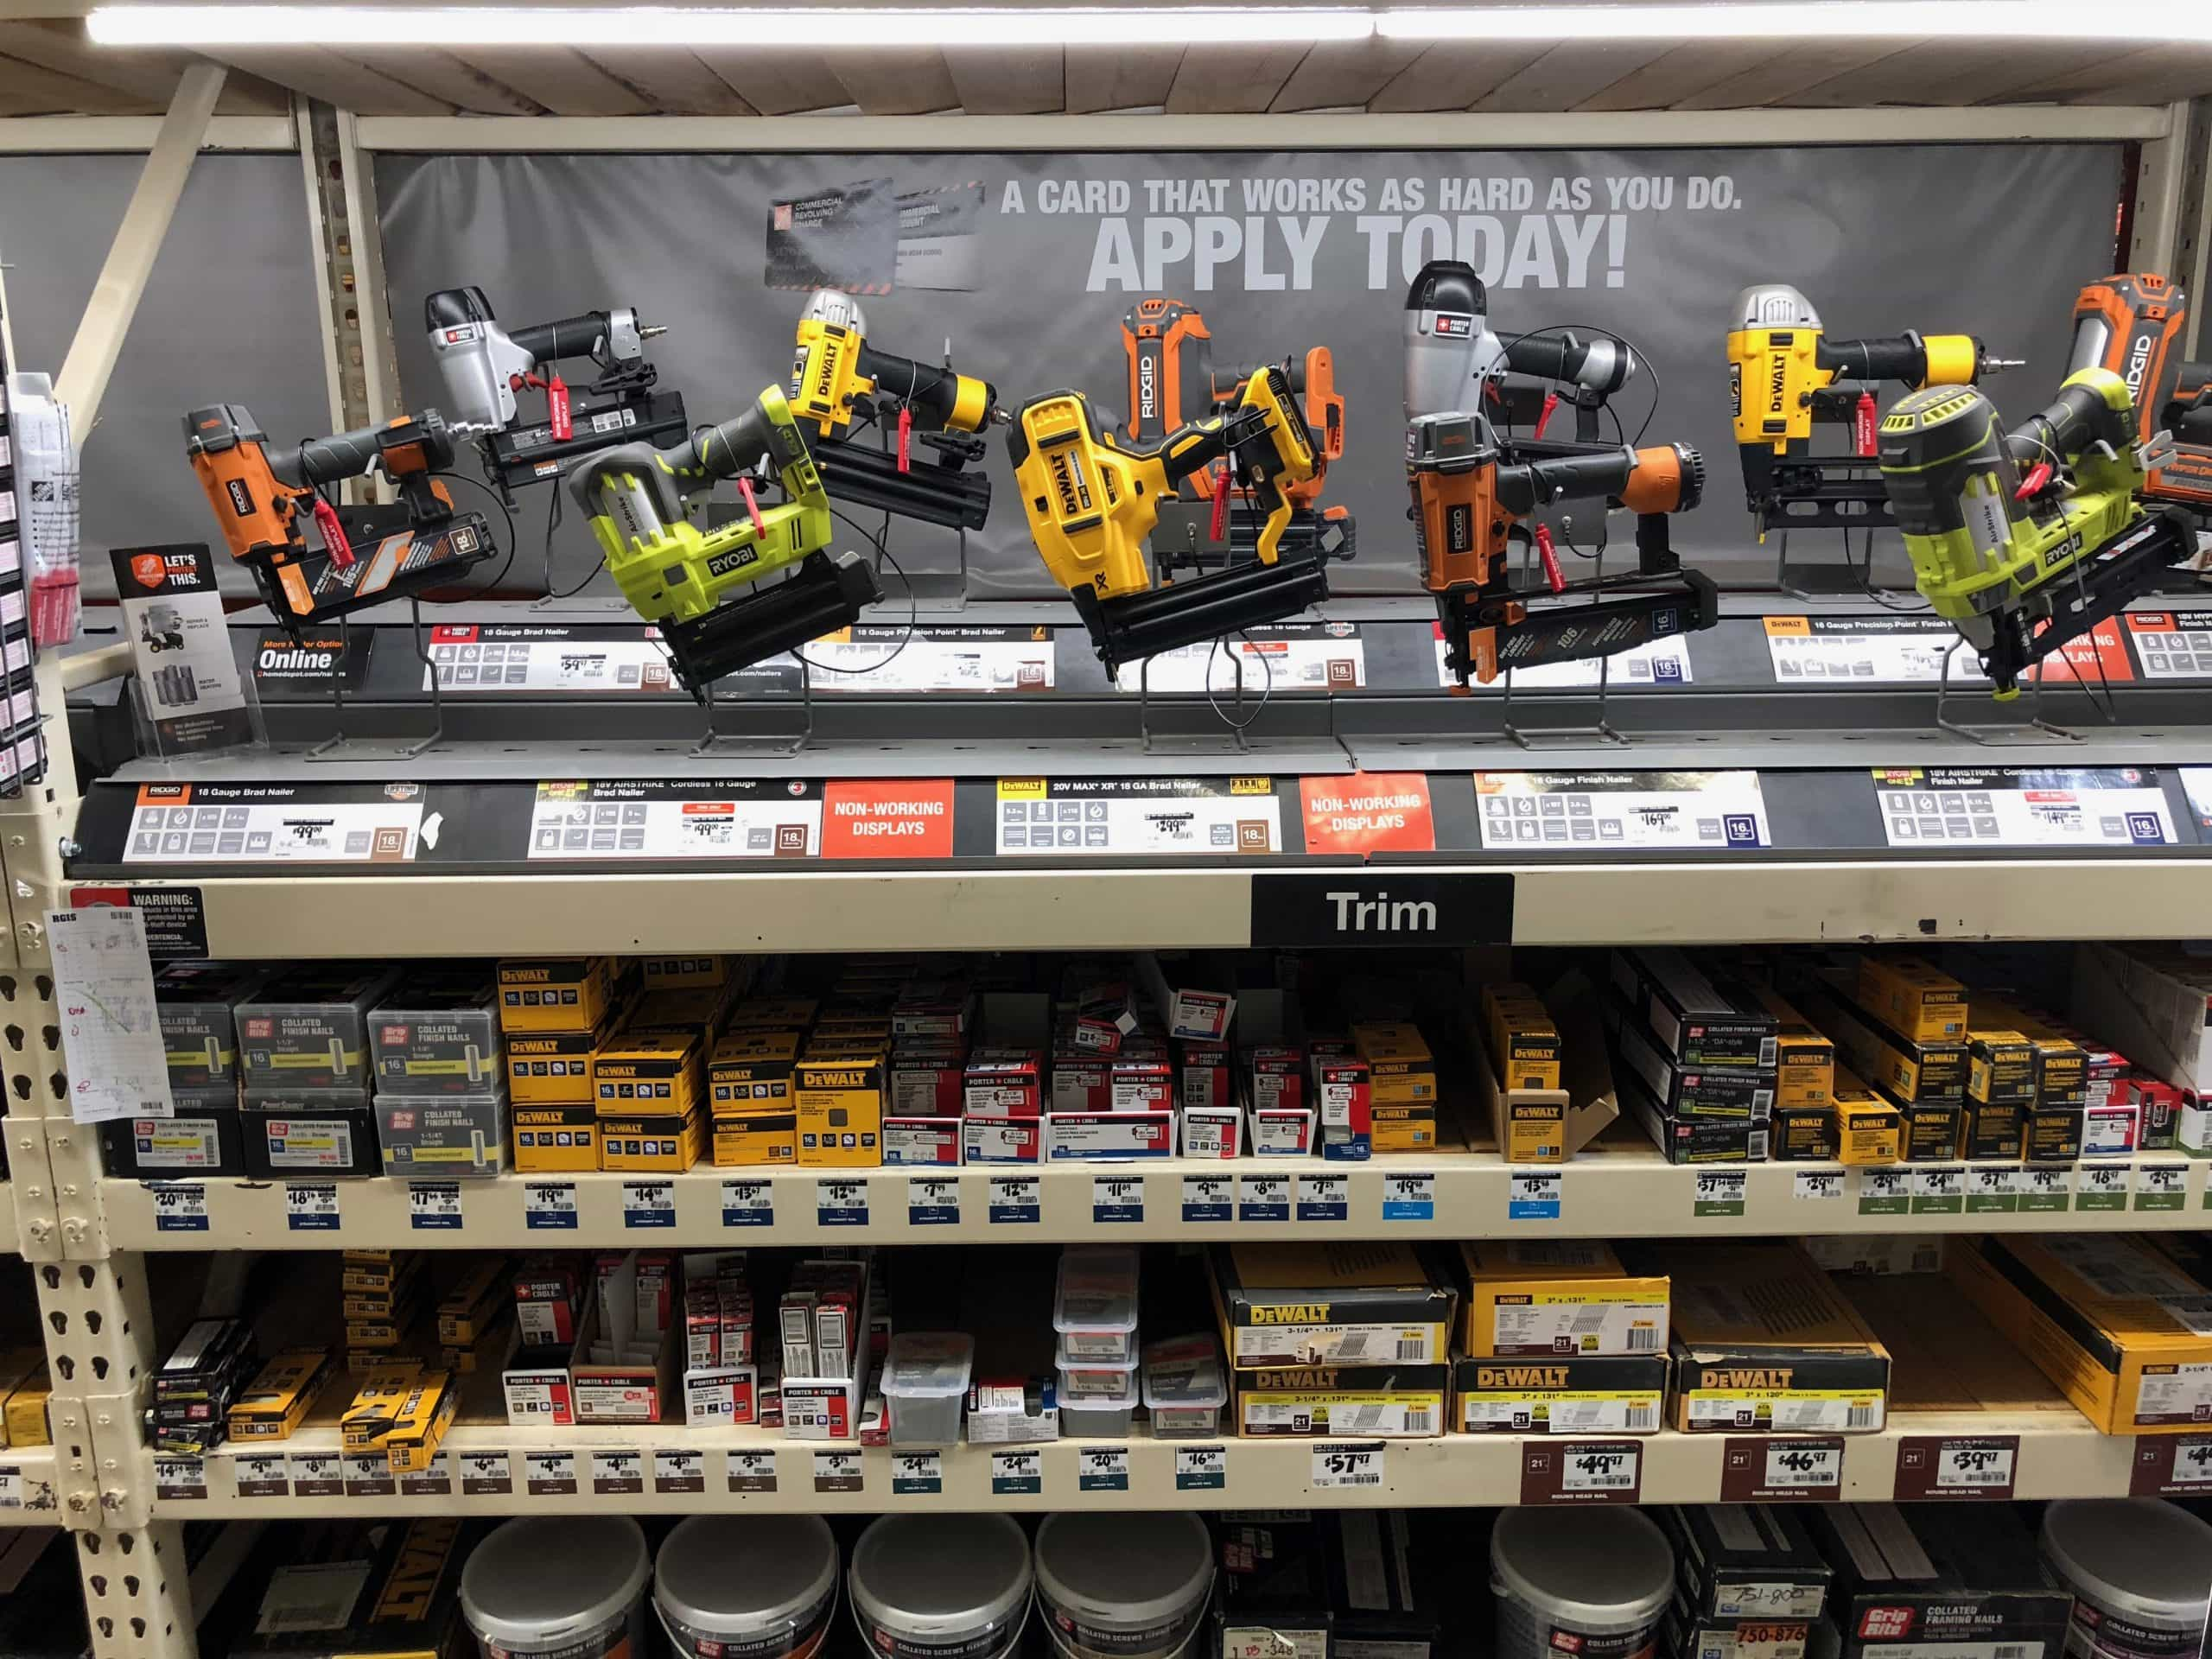 shelf full of power tools